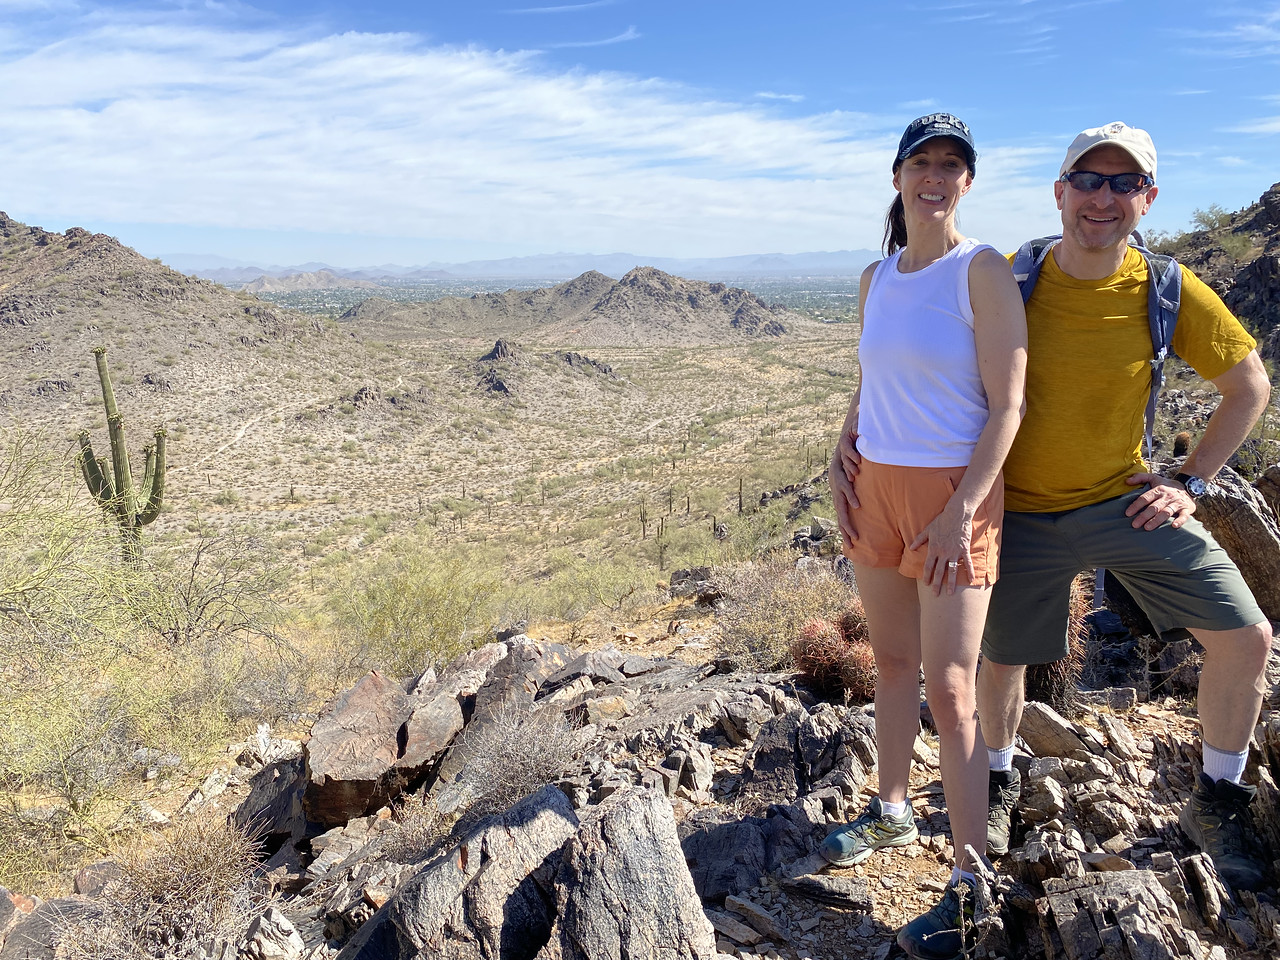 A couple enjoy the beautiful desert scenery during one of this summer's Phoenix hiking tours from the Wild Bunch Desert Guides.